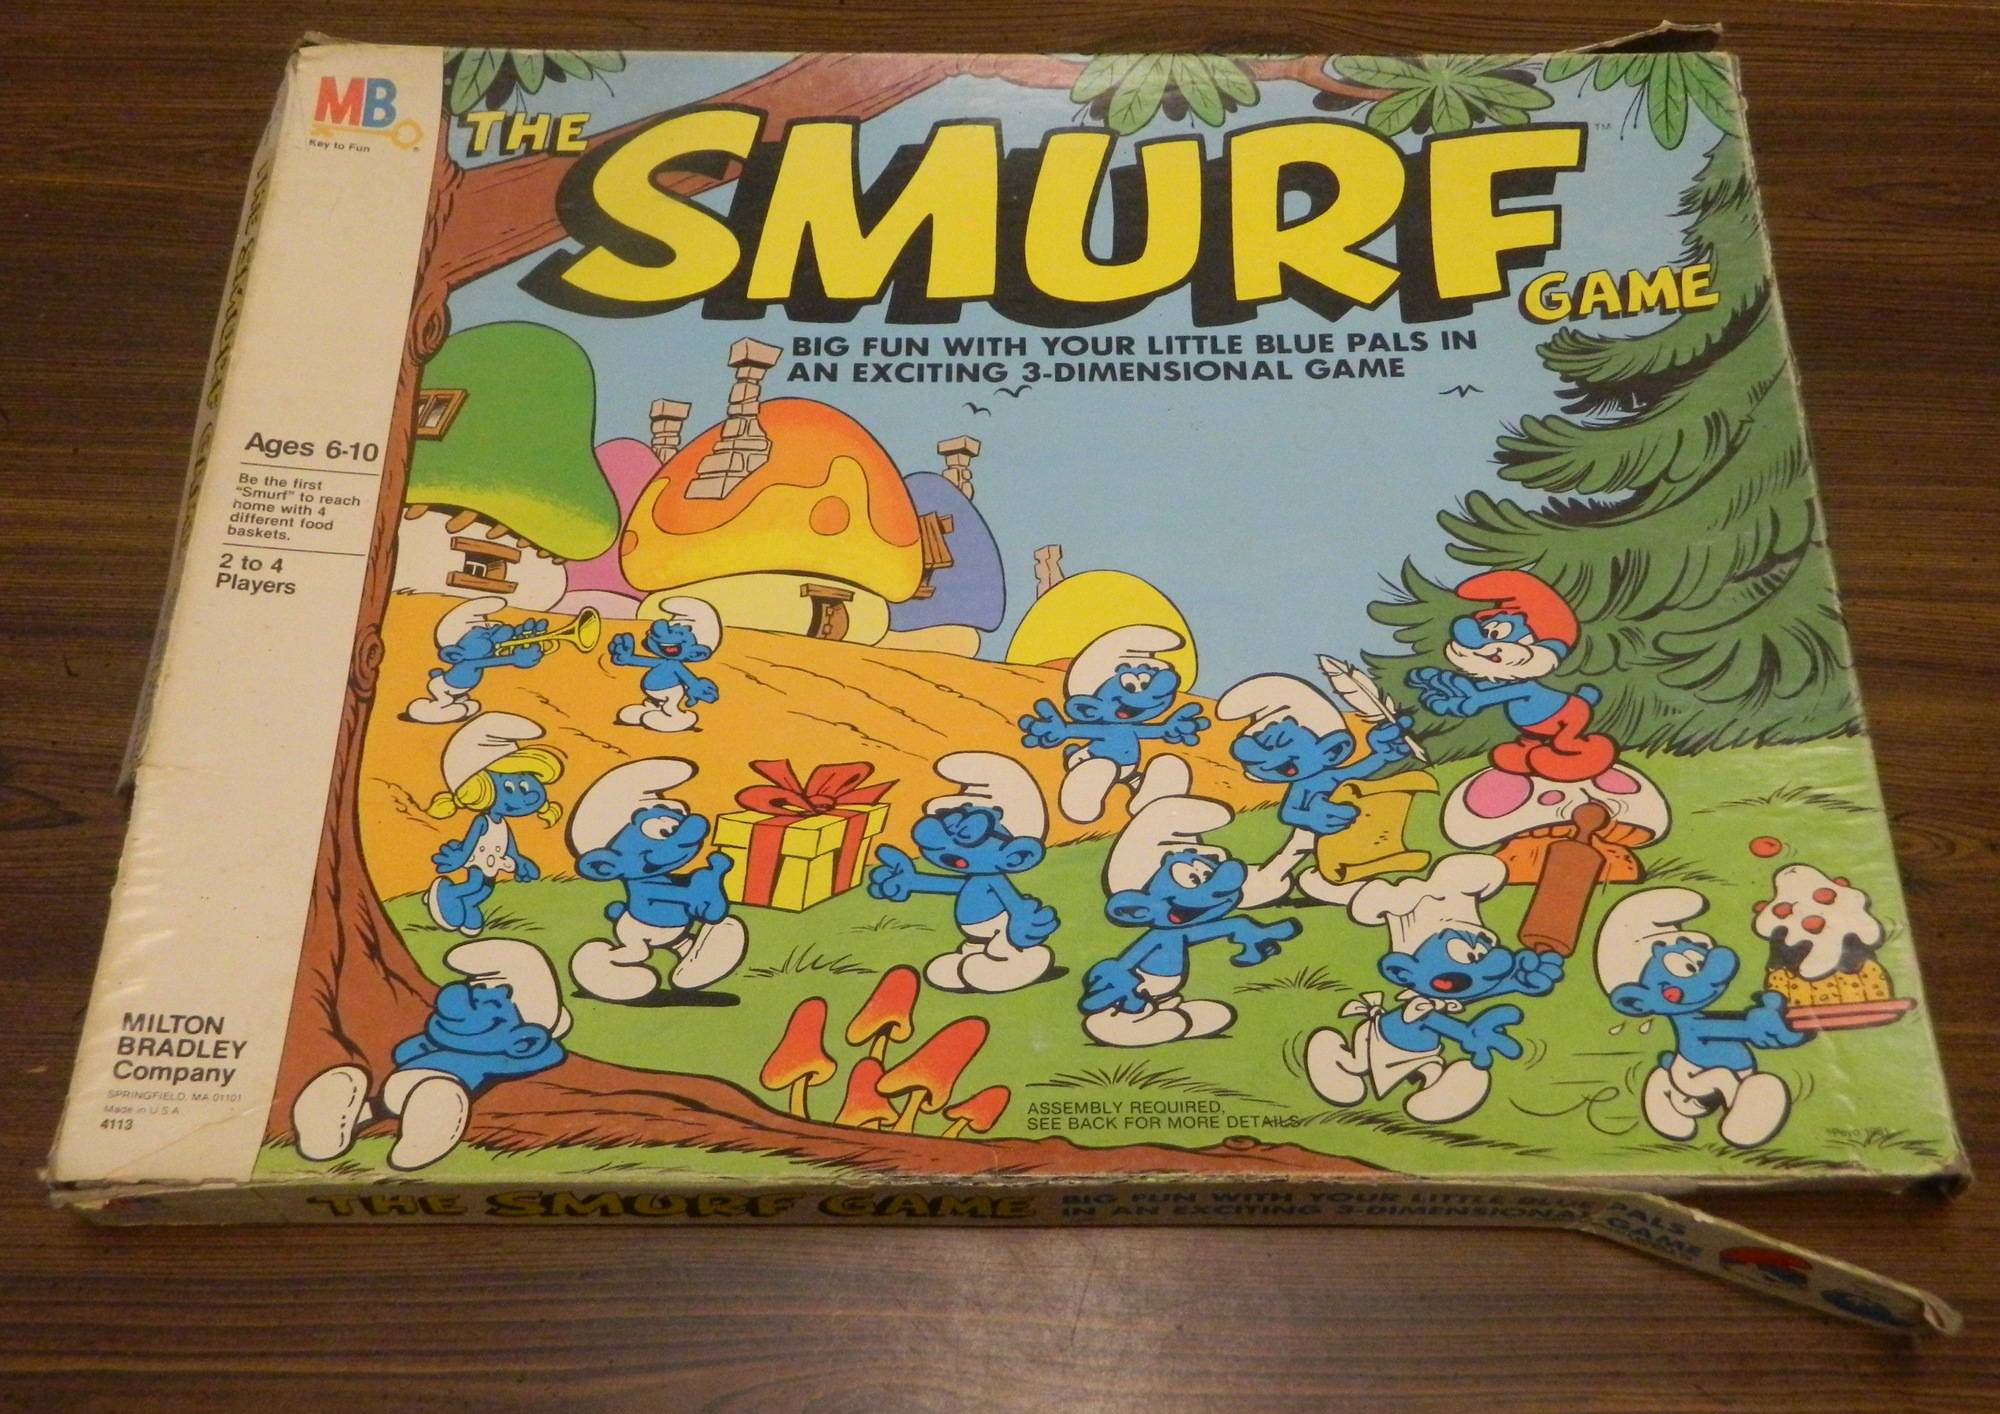 Box for The Smurf Game